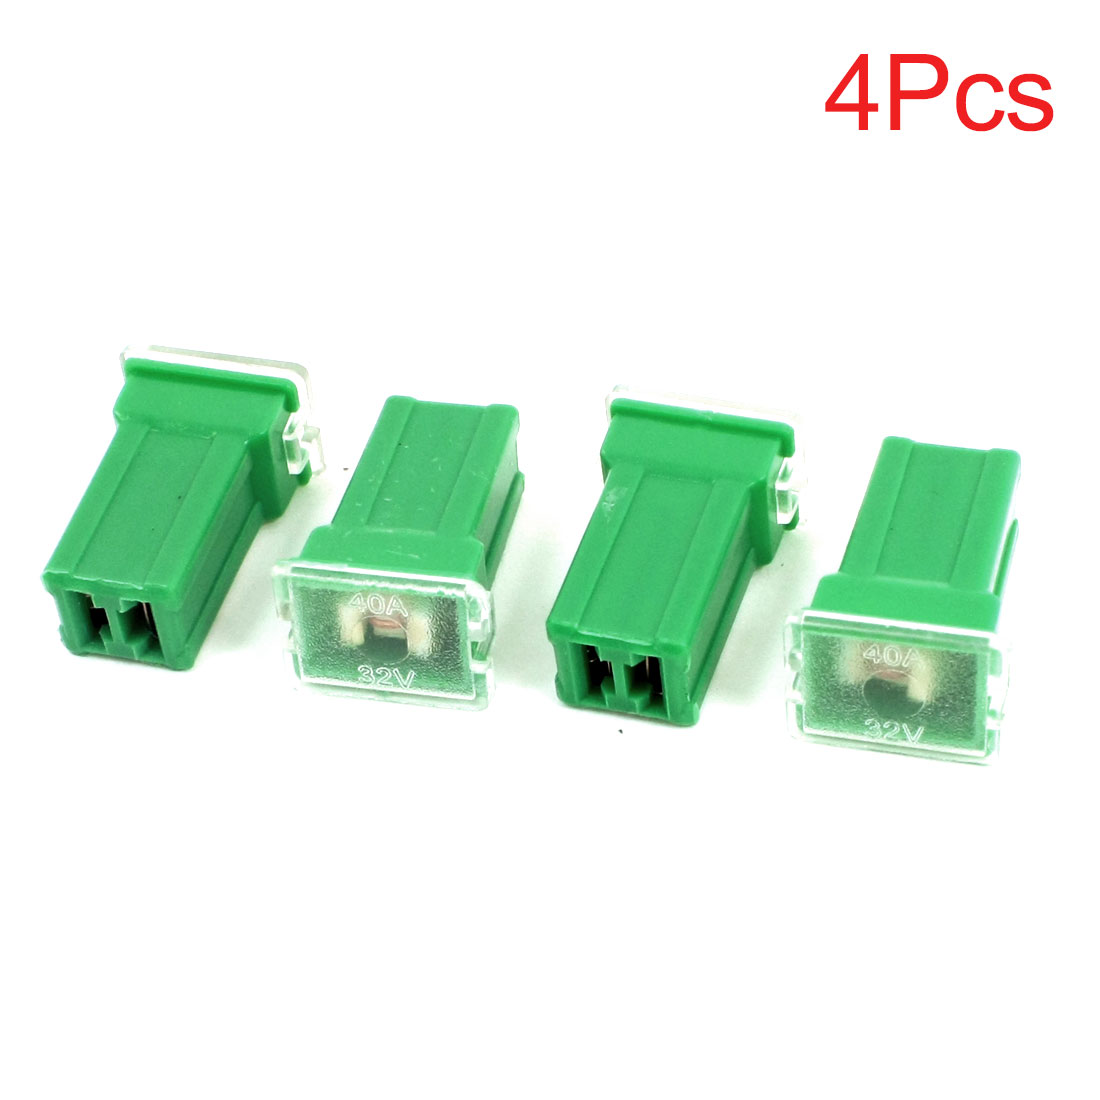 4Pcs 2 Terminals Car Vehicle Auto Female Plug Type Cartridge PAL Fuse Green DC 32V 40A